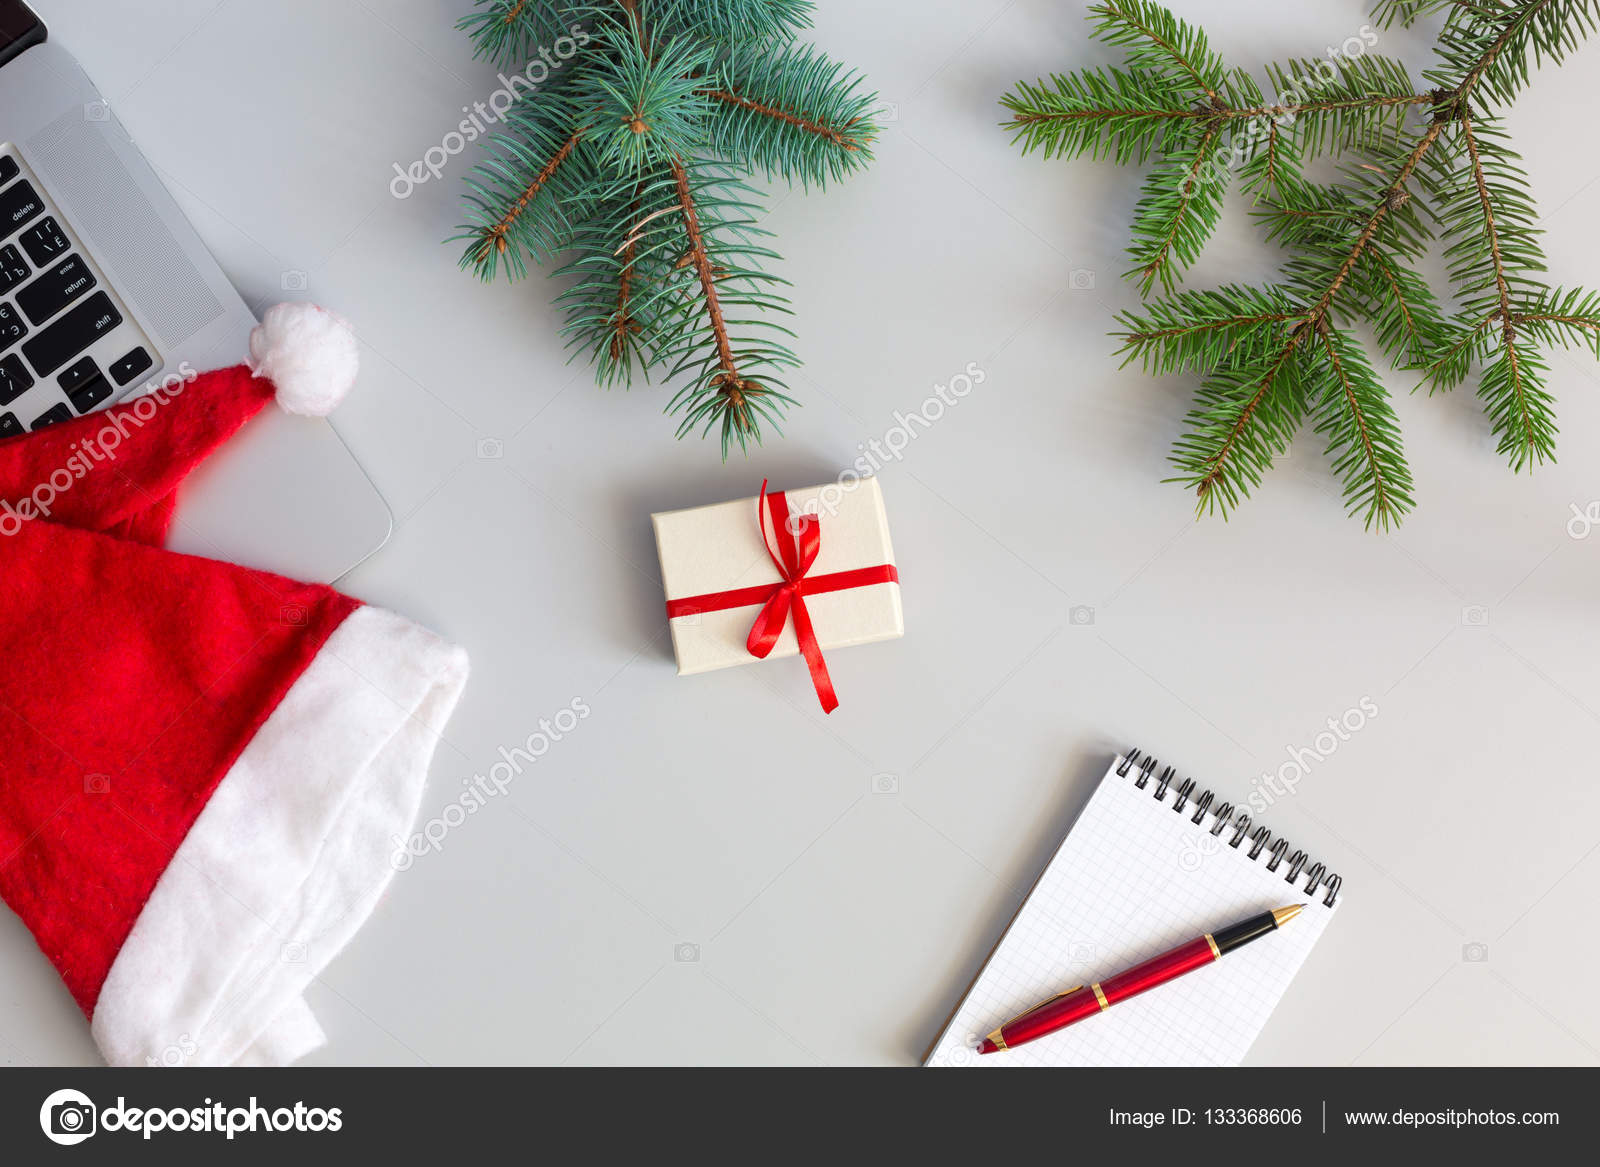 Top View Of Grey Office Table With Cropped Laptop And Christmas Theme Items Branch New Year Tree Santa Cap Notepad Pen Decorated Gift Box Photo By